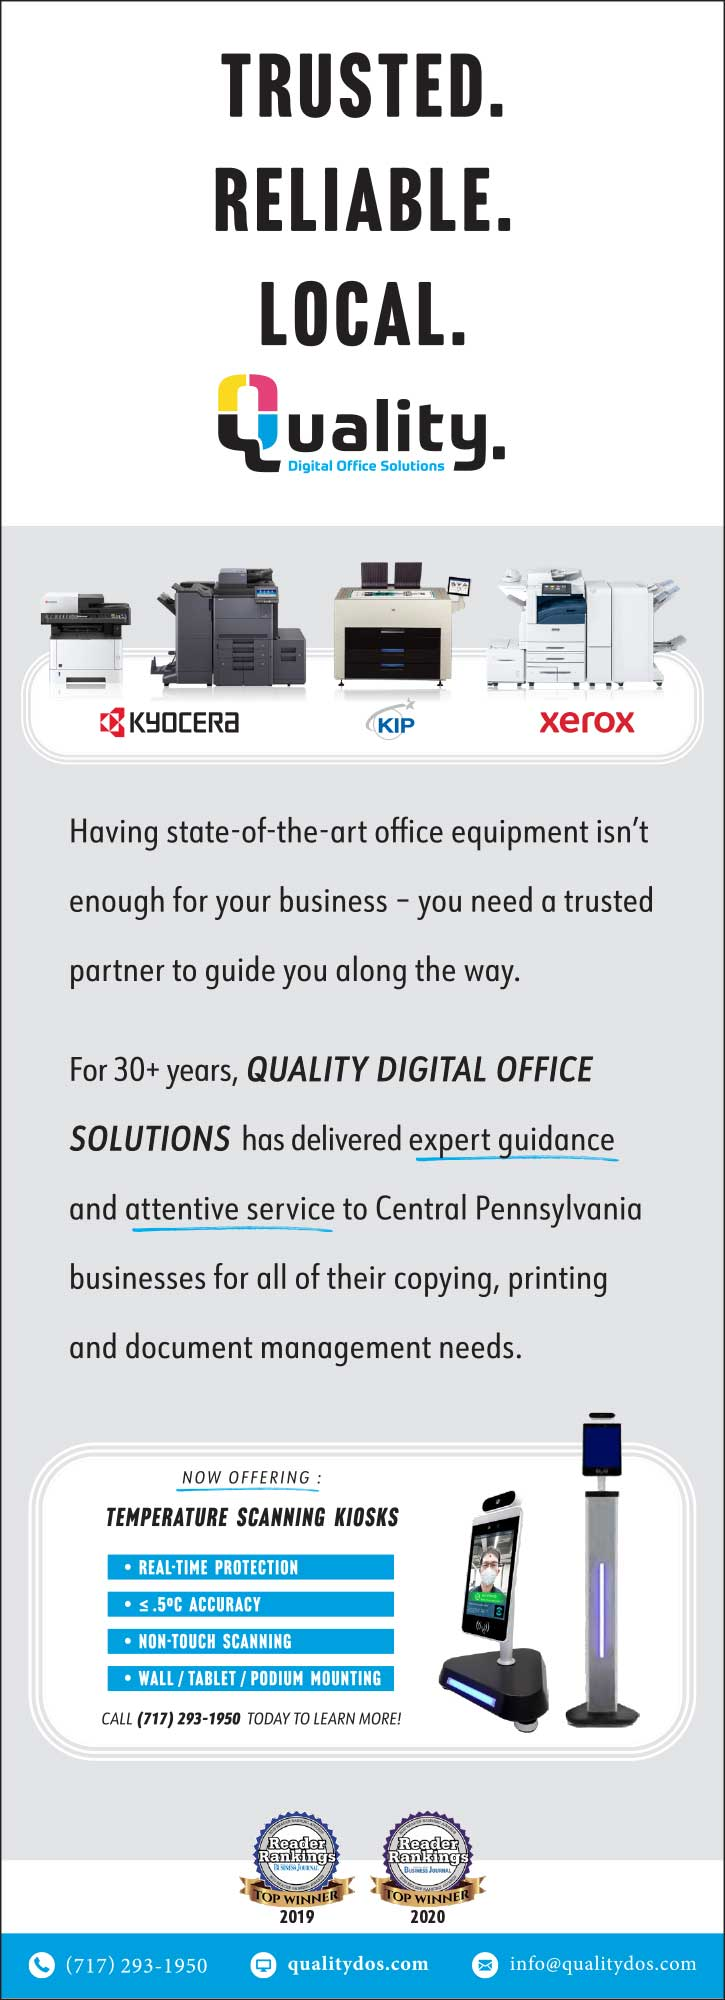 "<center>Quality Digital Office Solutions | <b><a href=""https://qualitydos.com"" target=""_blank"" rel=""noopener noreferrer"">CLICK HERE to view the website</a></b></center>"